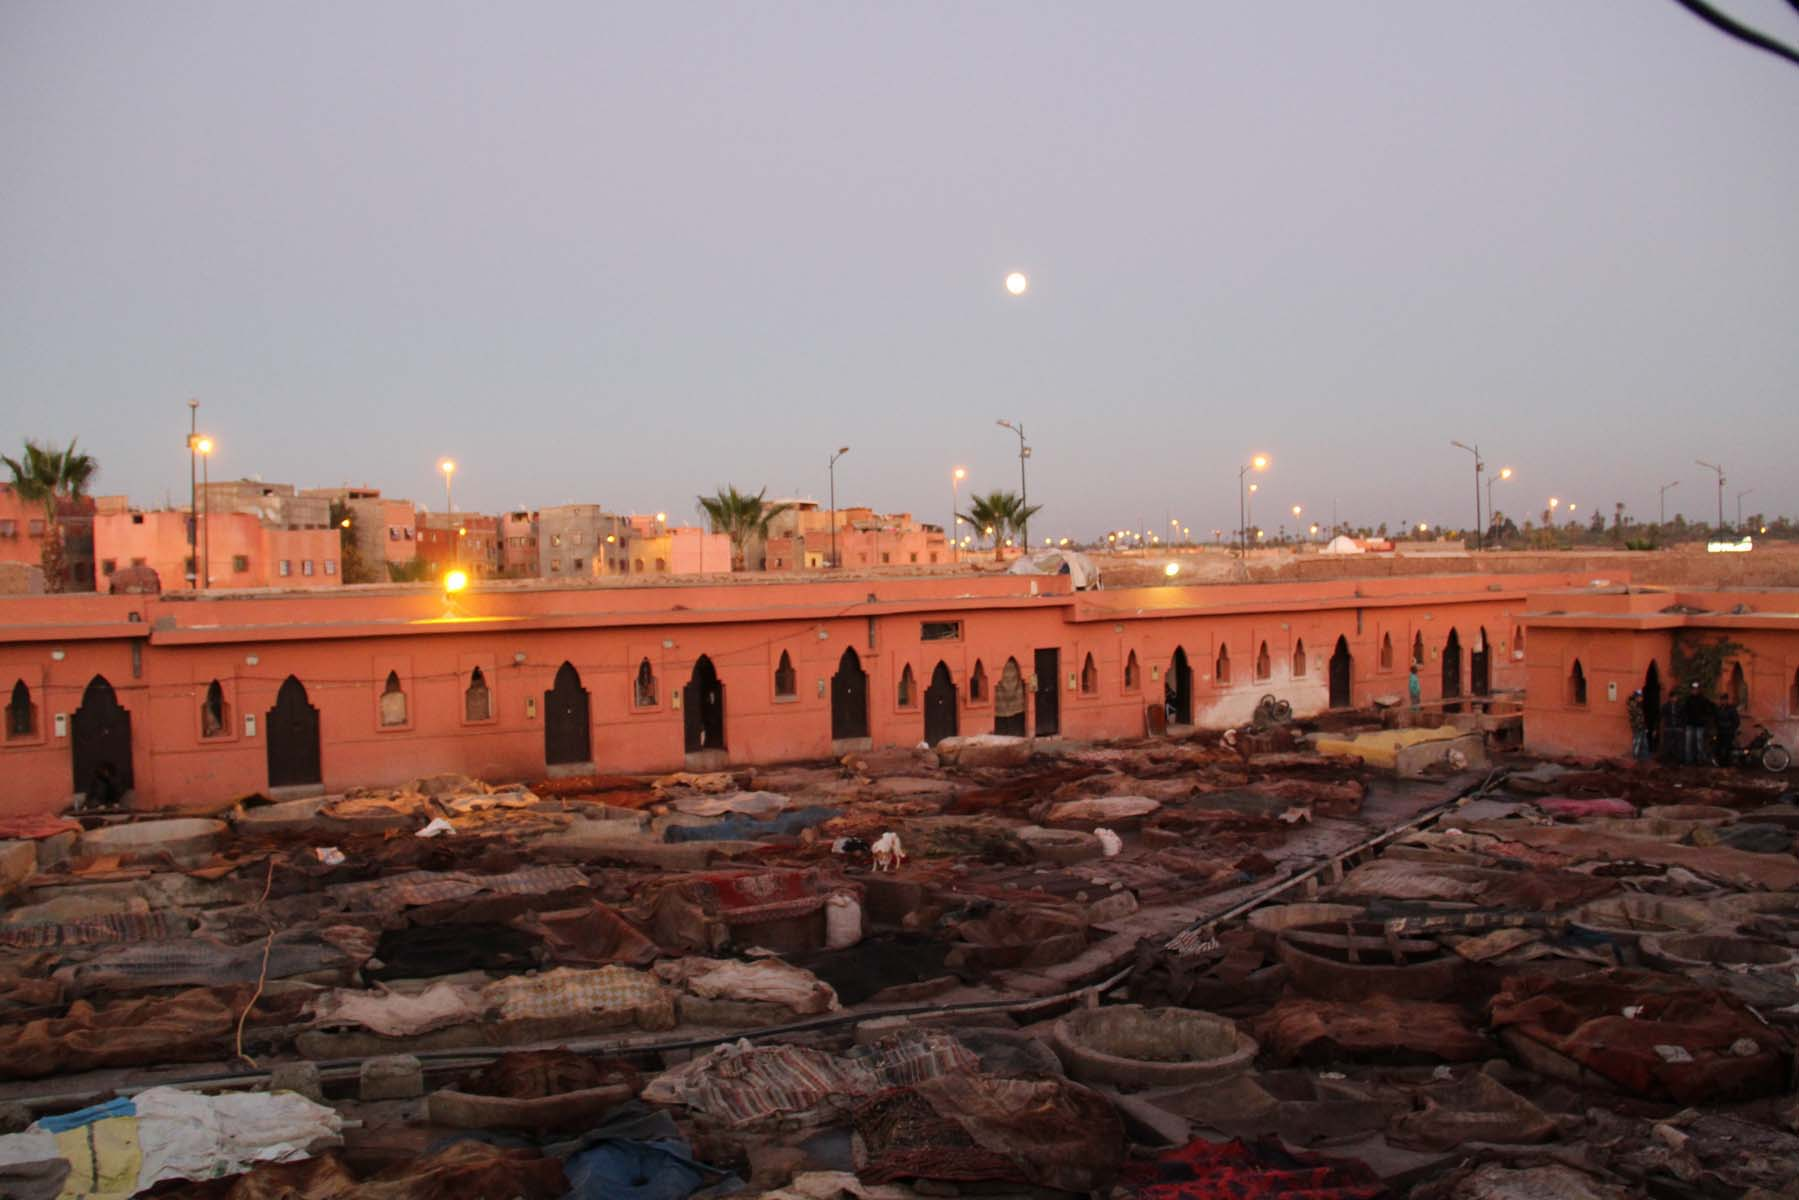 View on a tannery in Marrakech at sunset